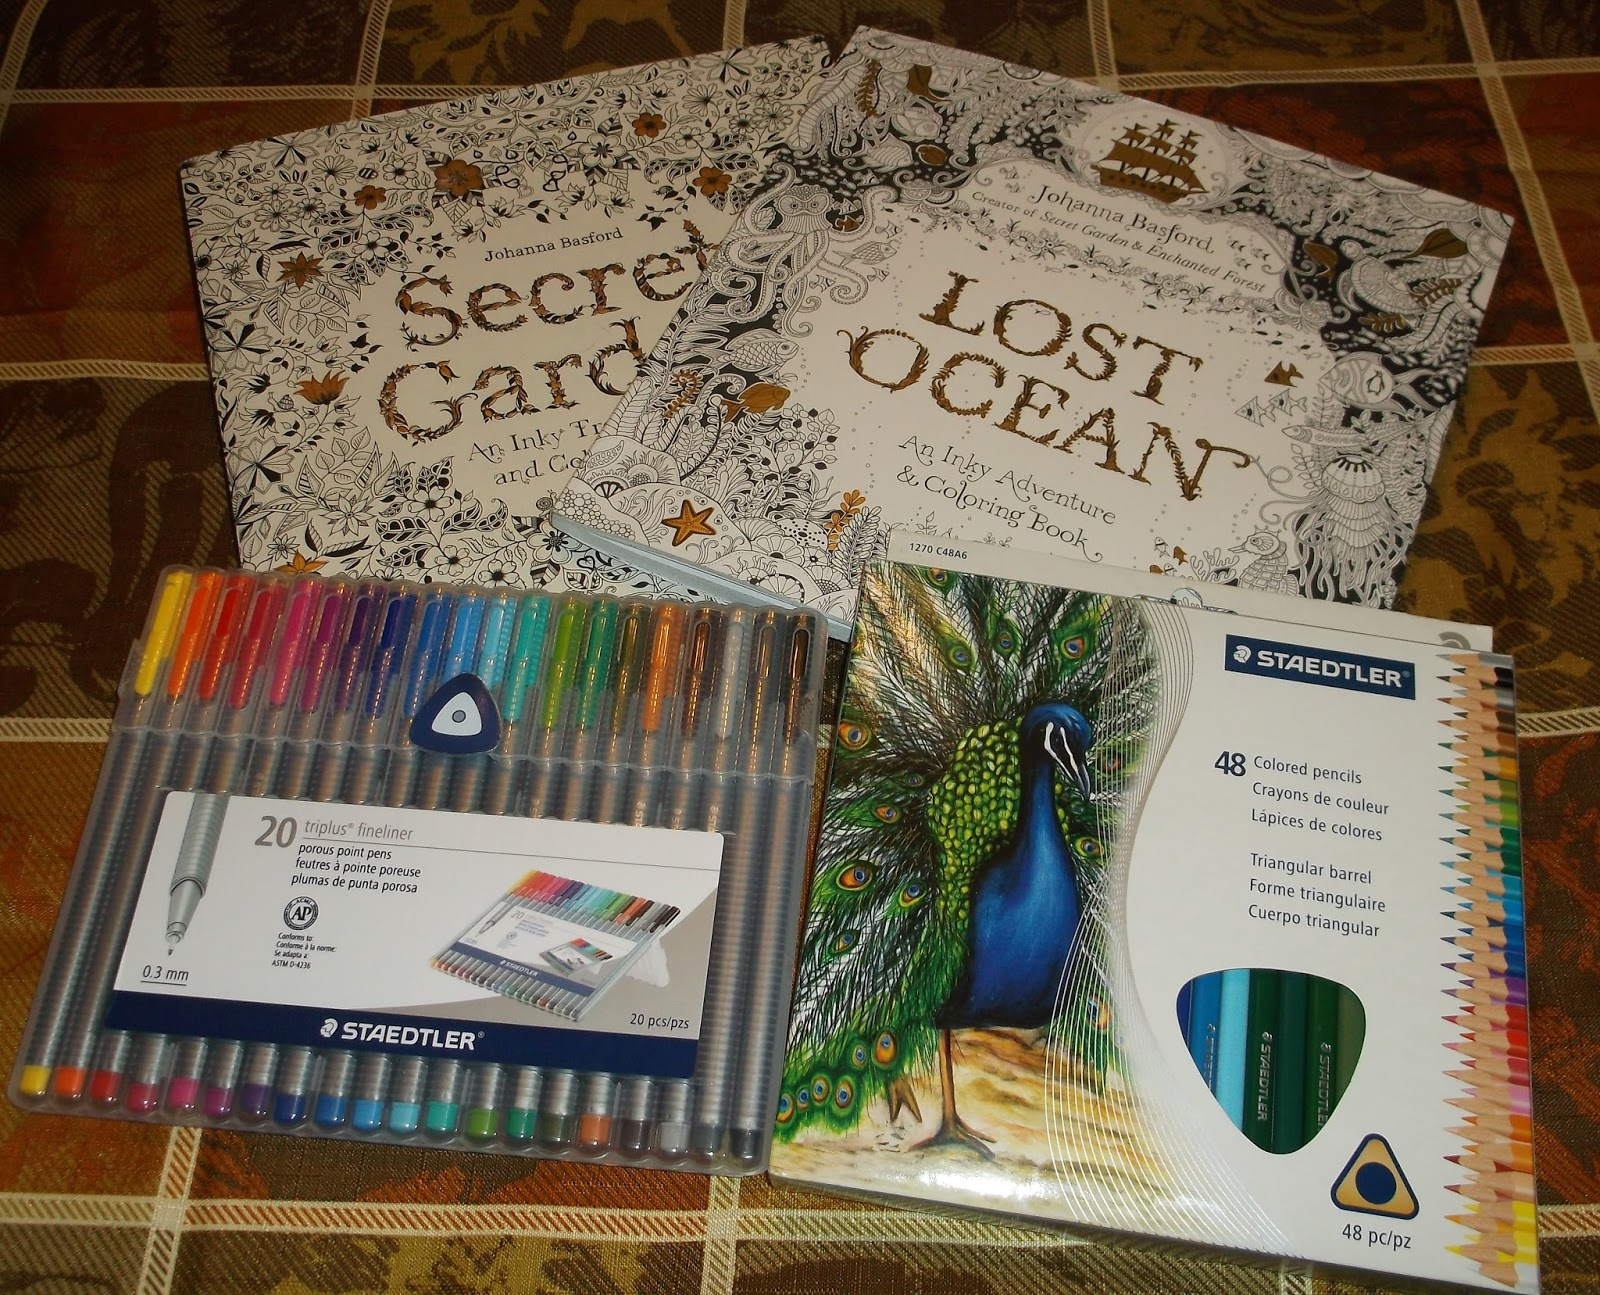 Lost Ocean Secret Garden By Johanna Basford And Staedtler Pens Colored Pencils